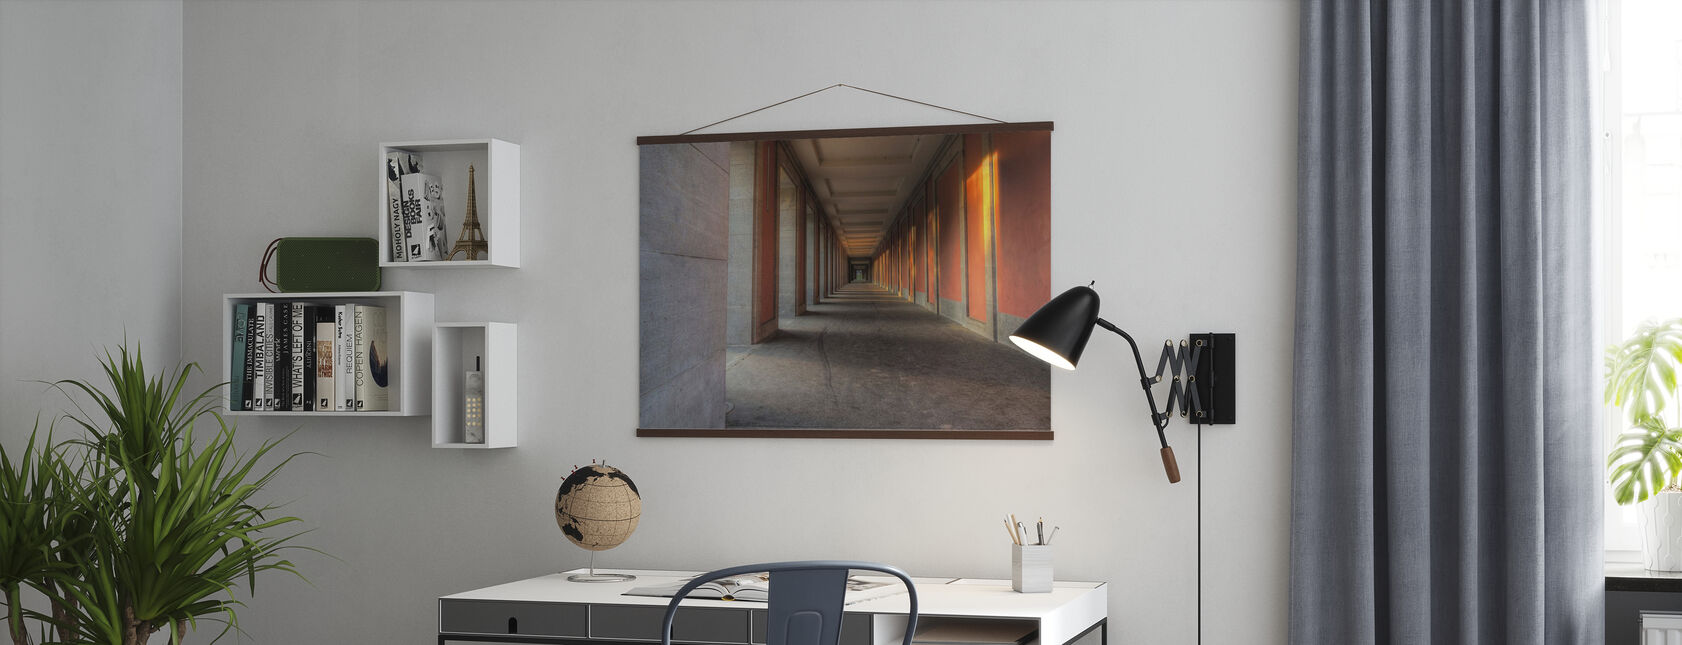 House Gallery - Poster - Office